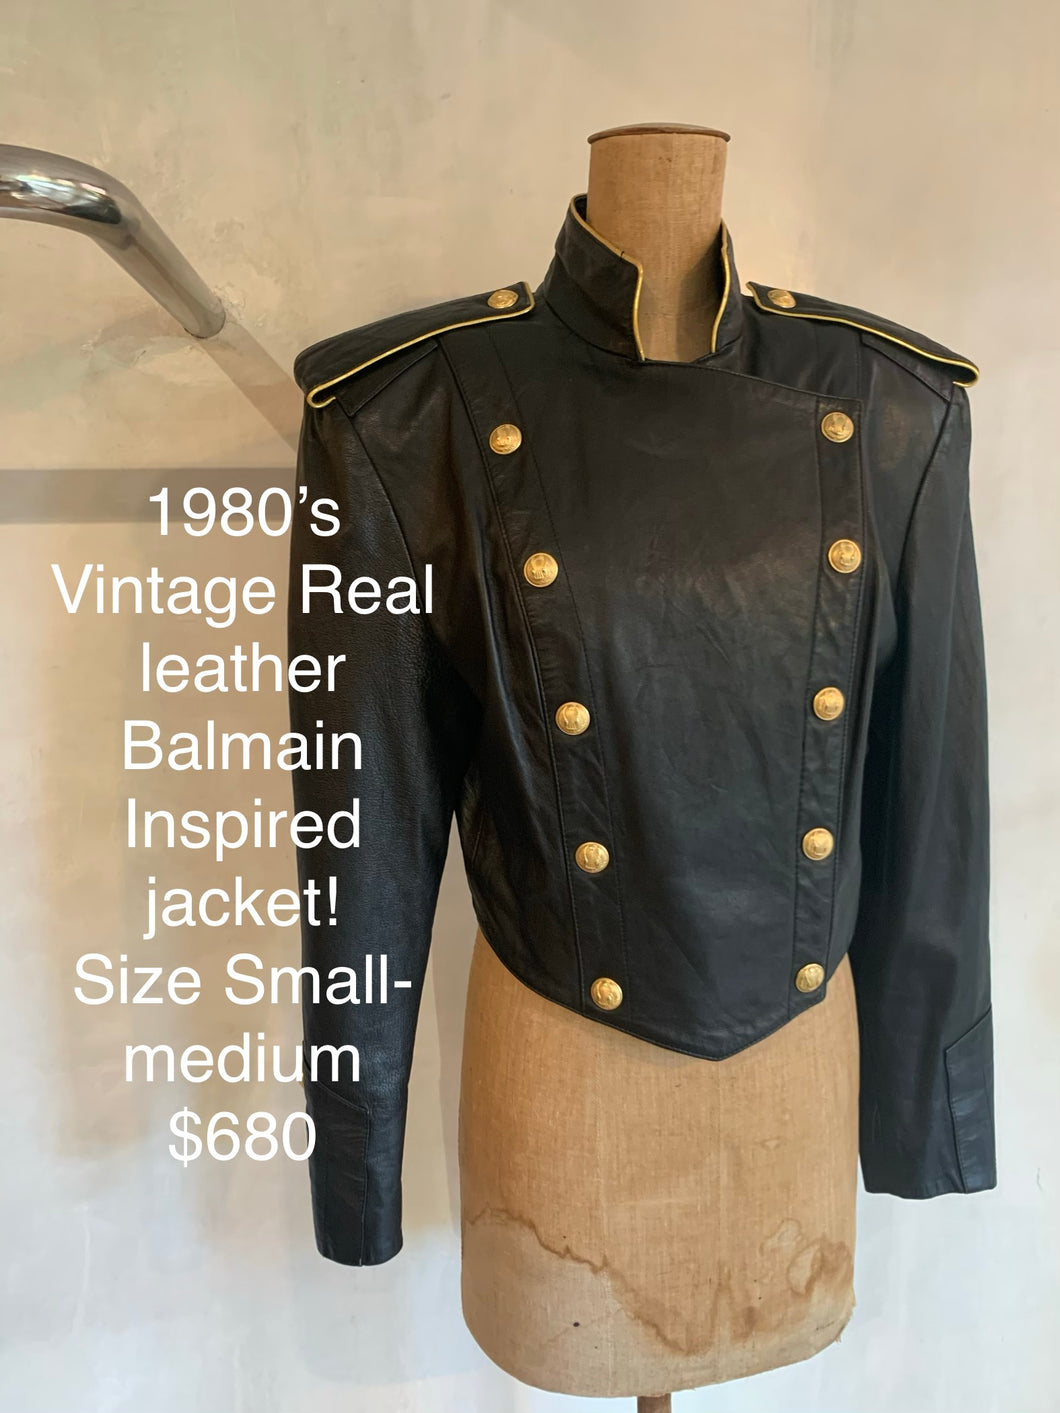 Vintage 1980's Real leather Balmain inspired jacket